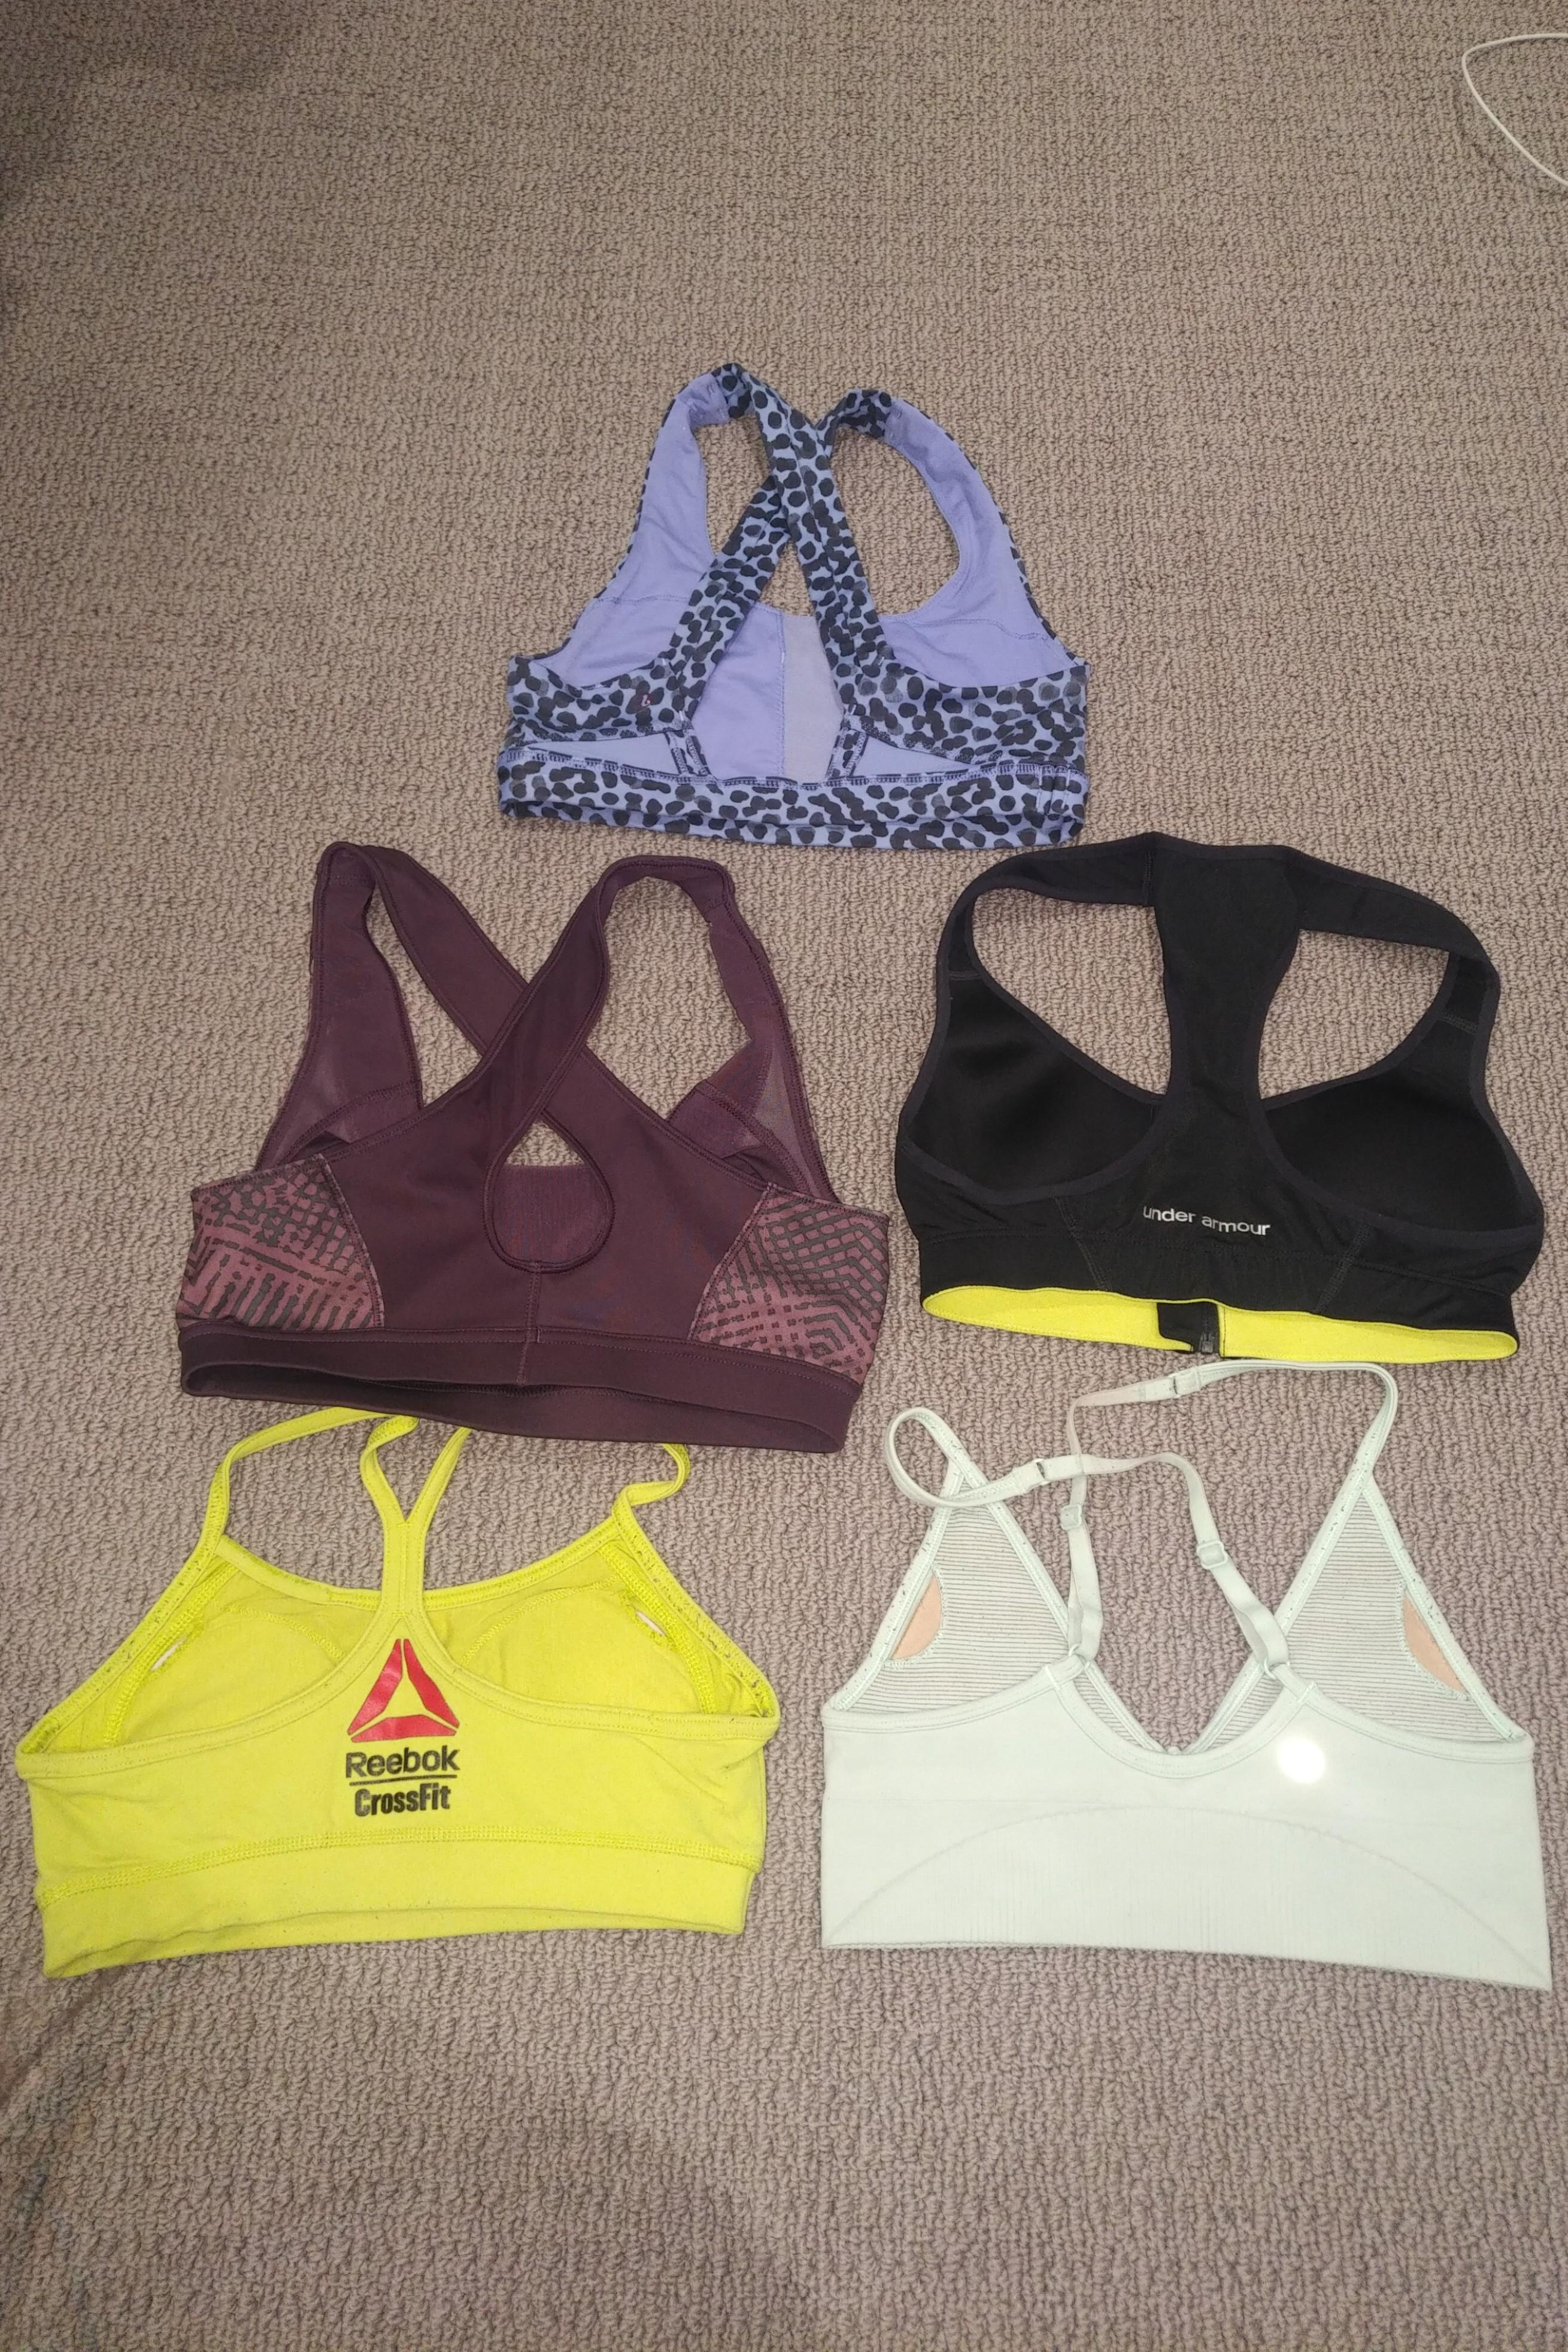 Lululemon, Adidas, Under Armour and Reebok Sports Bras